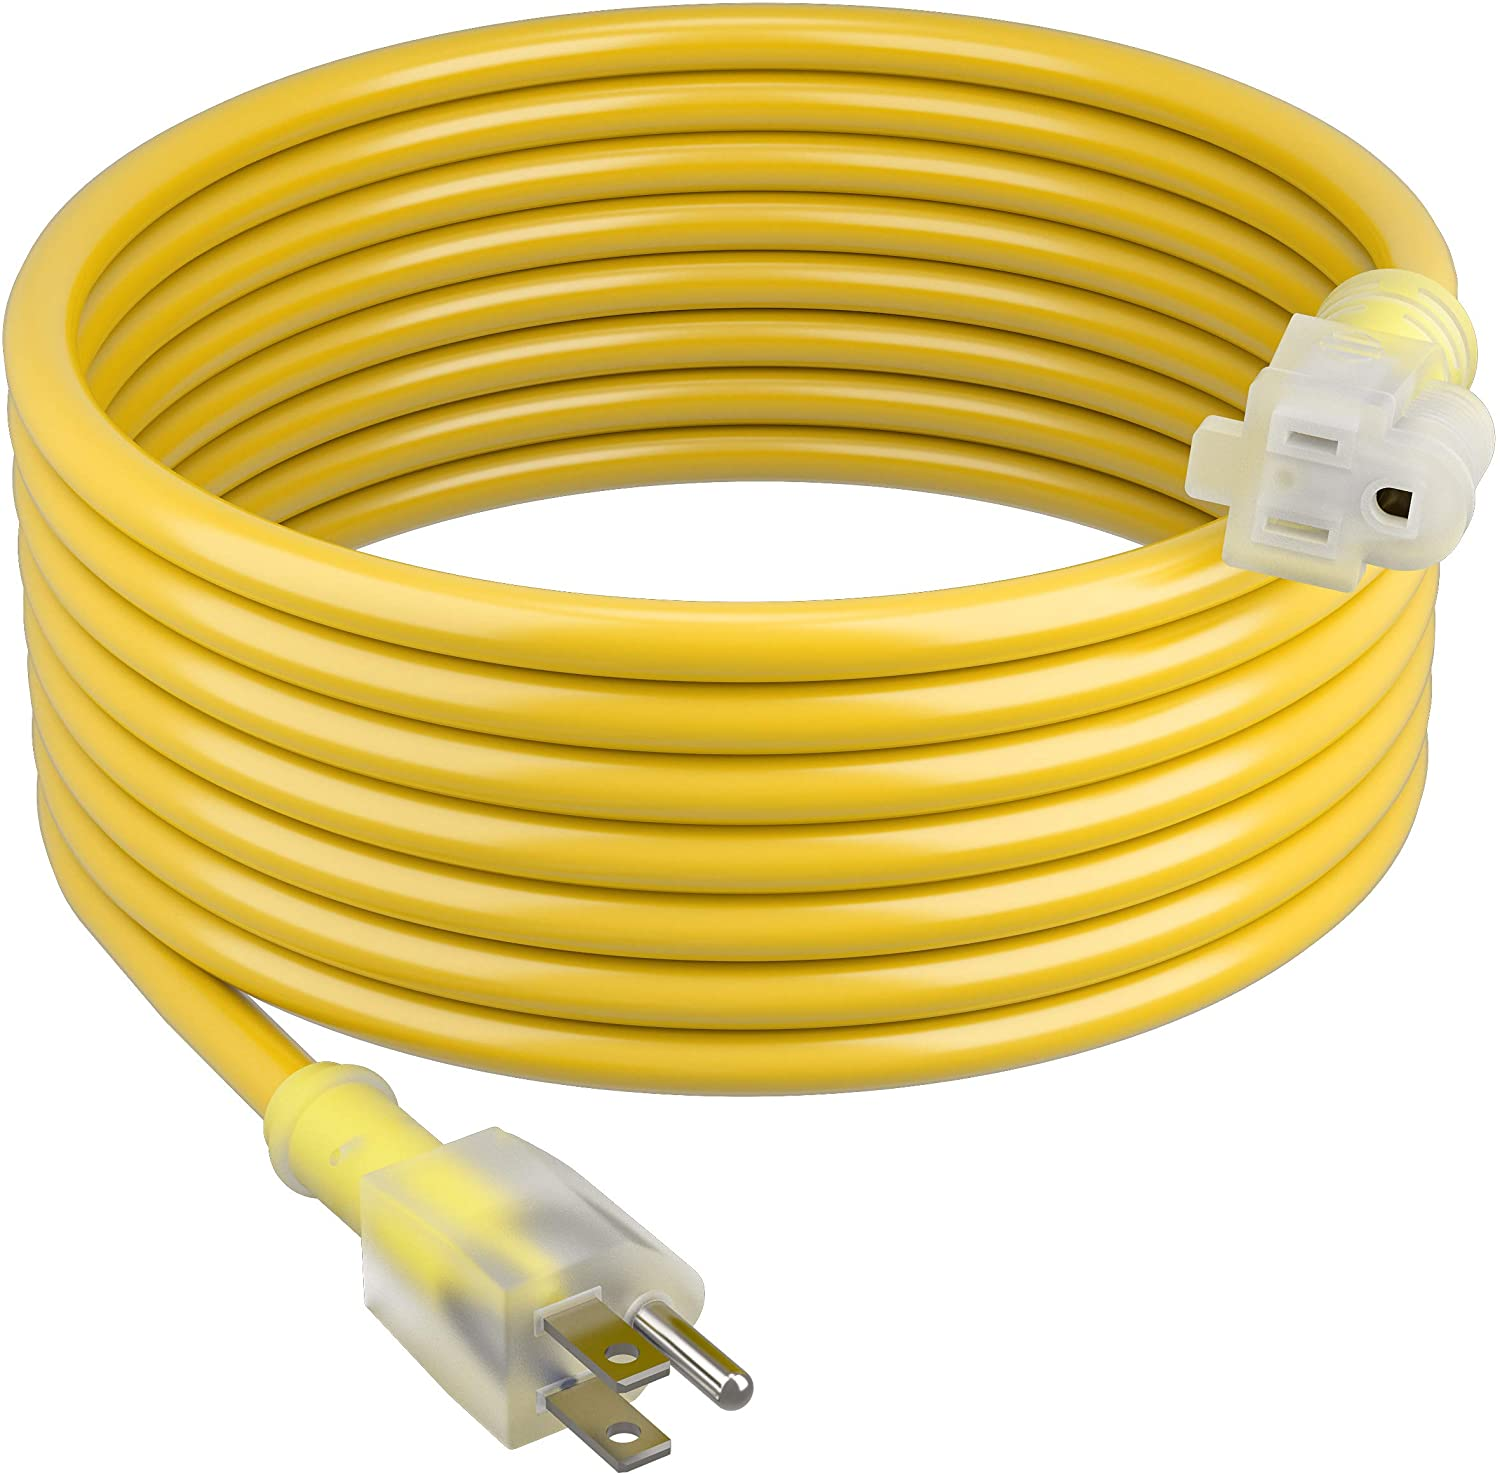 GearIT Extension Selling Cord 14 3 100 Heavy Duty SJTW Feet with Lighted High material